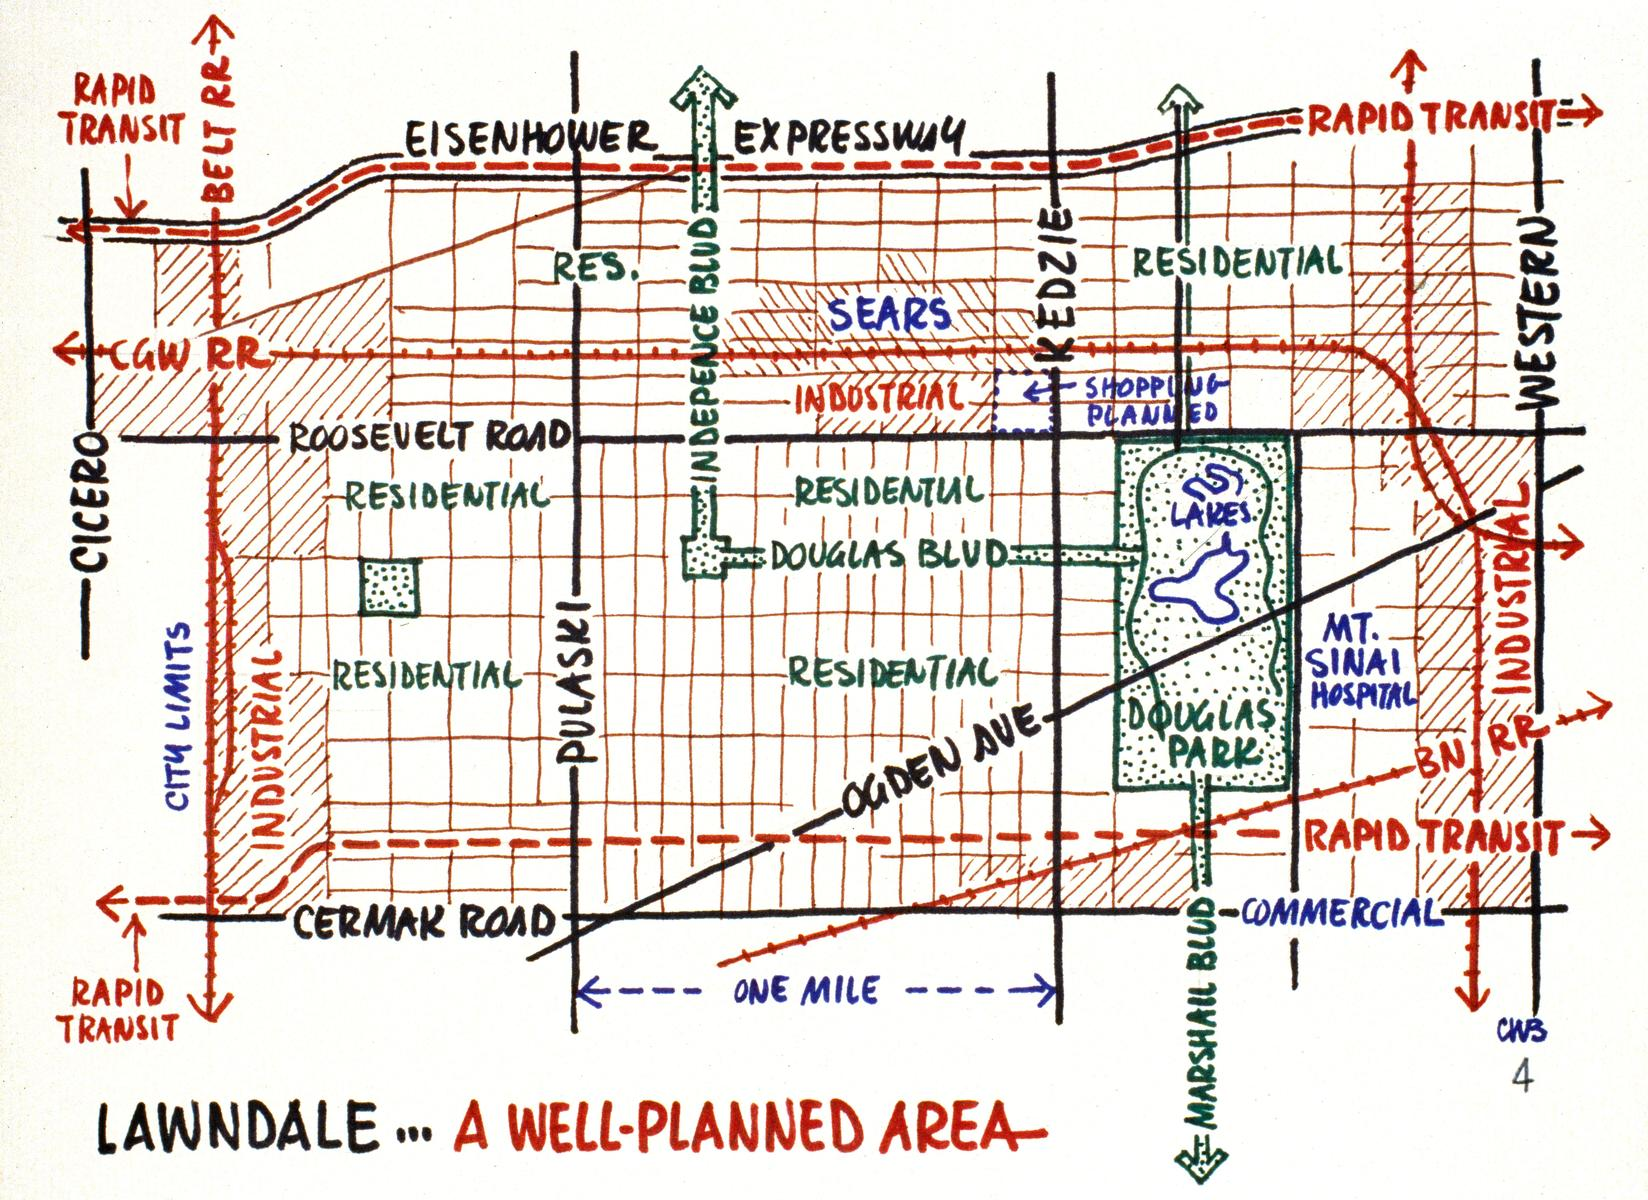 Proposal for Lawndale: planned infrastructure